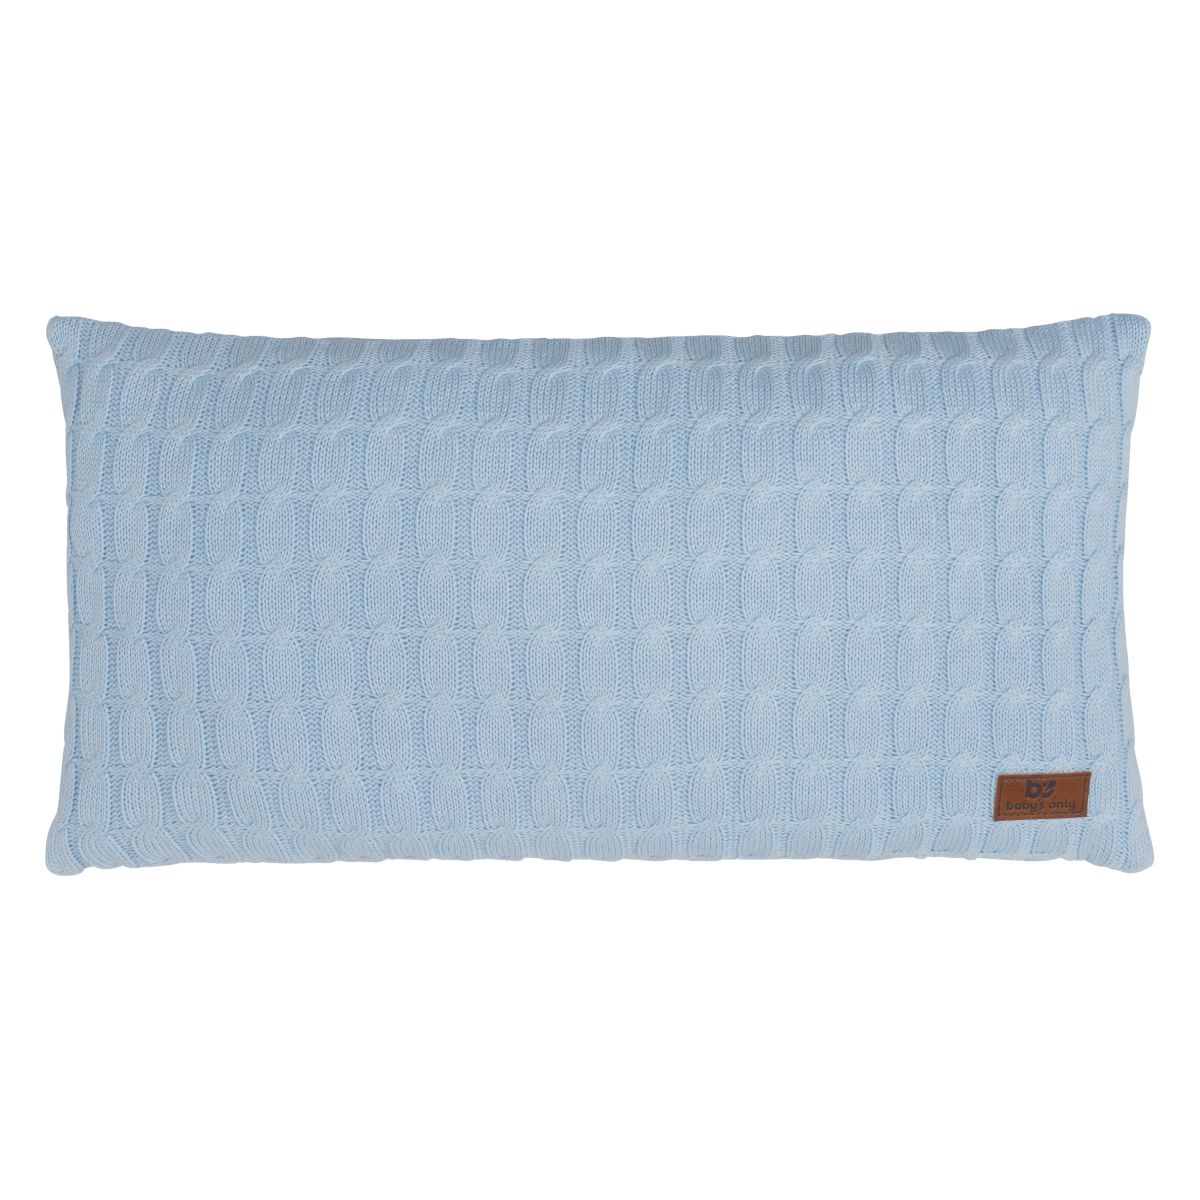 babys only 0131620 kussen 60x30 cable baby blauw 1